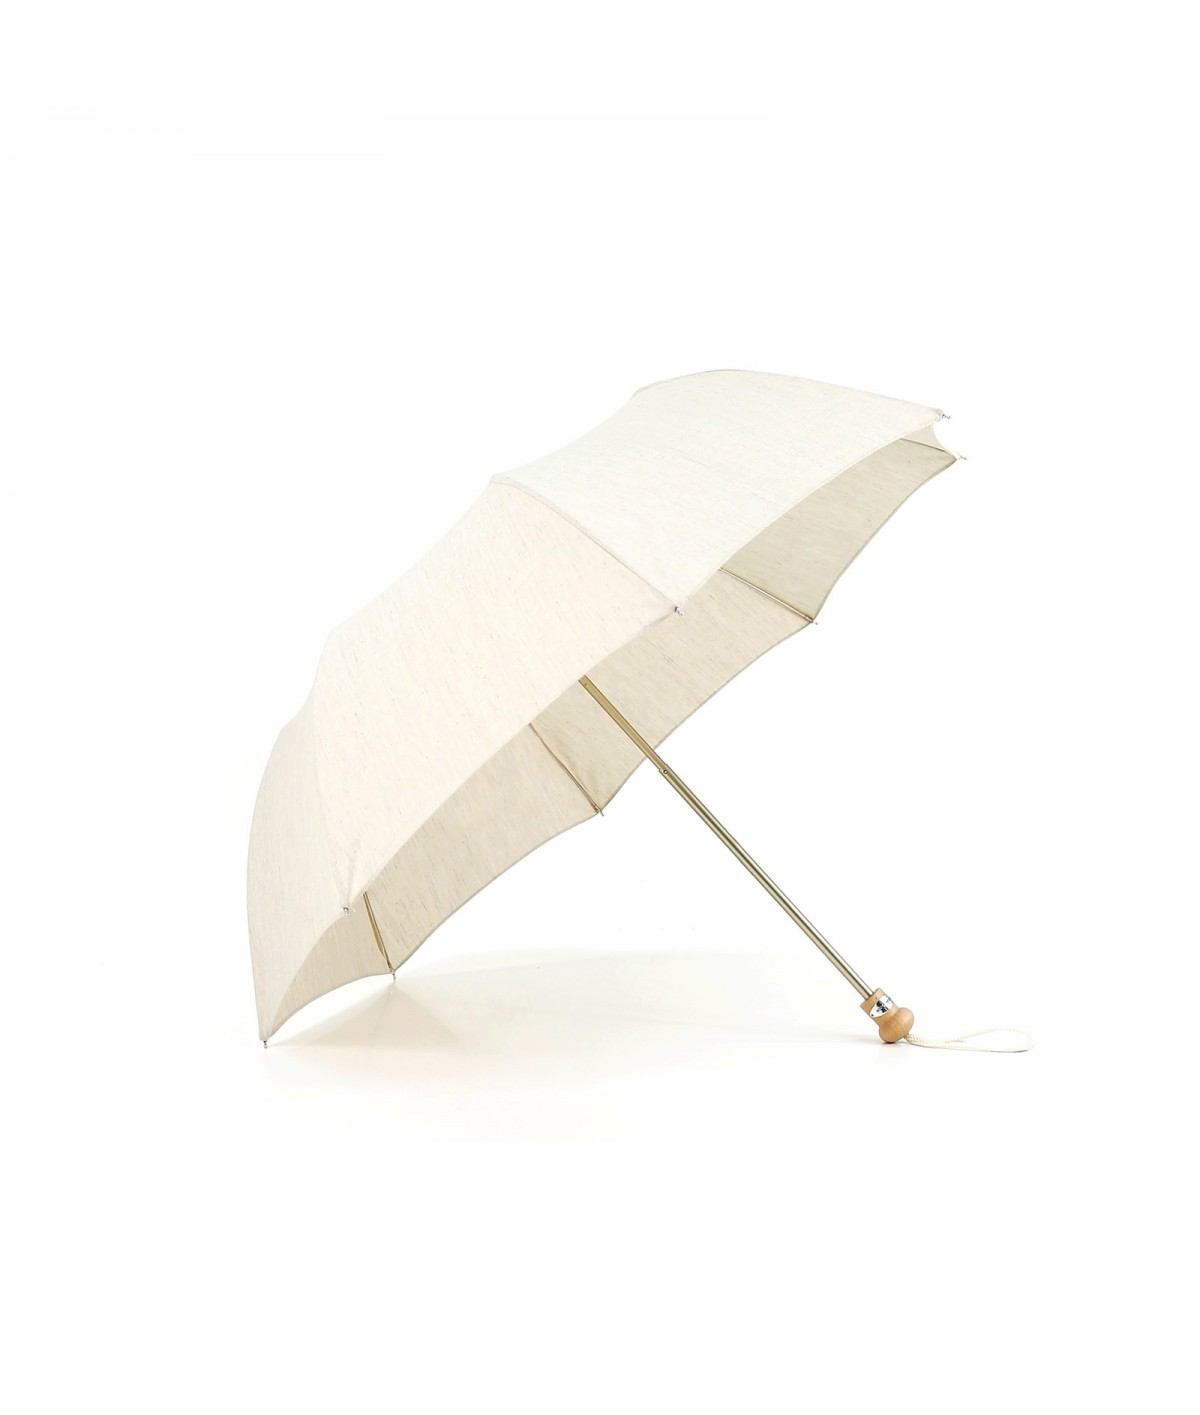 → Parasol - Folding linen Traditionally handcrafted in France by the Umbrellas Manufacturer Maison Pierre Vaux